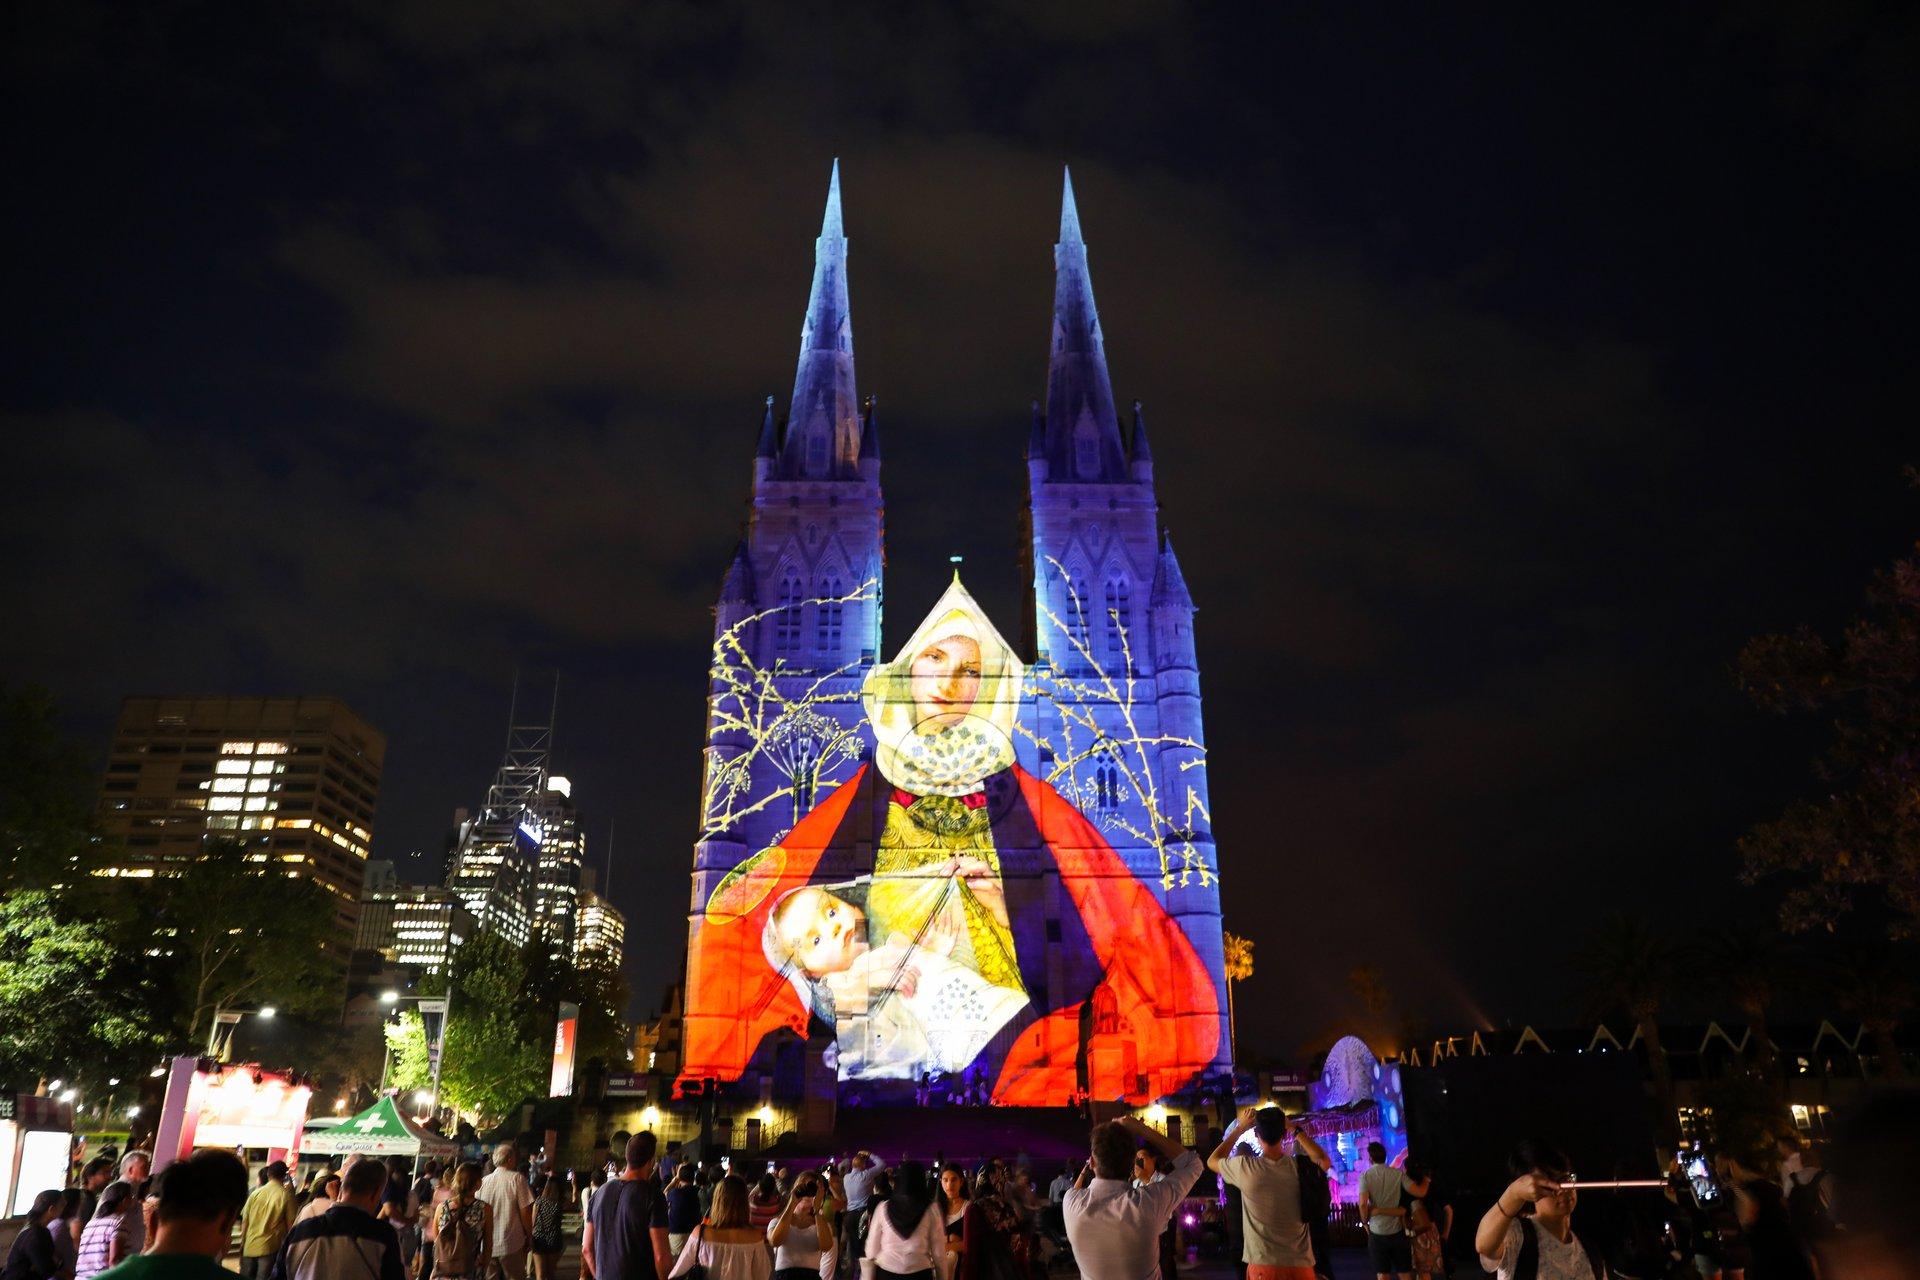 St Mary's Christmas projections 2020